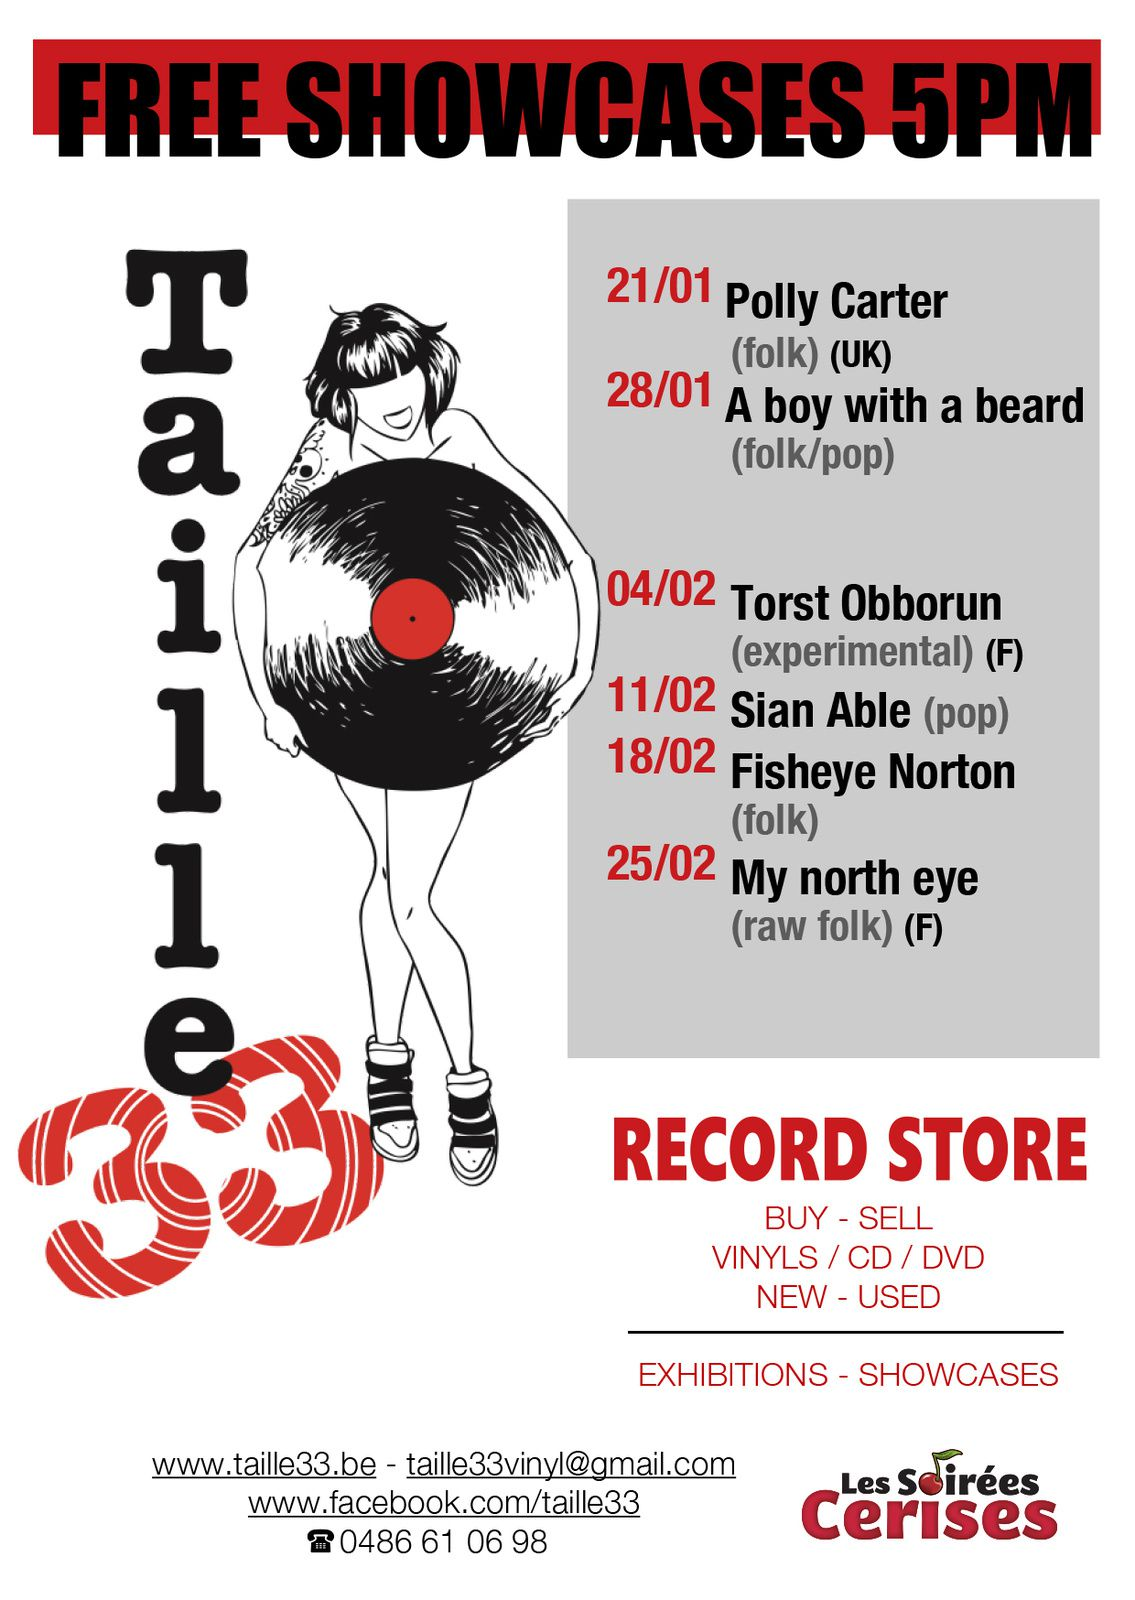 ▶ Prochains showcases @ Taille33 record store